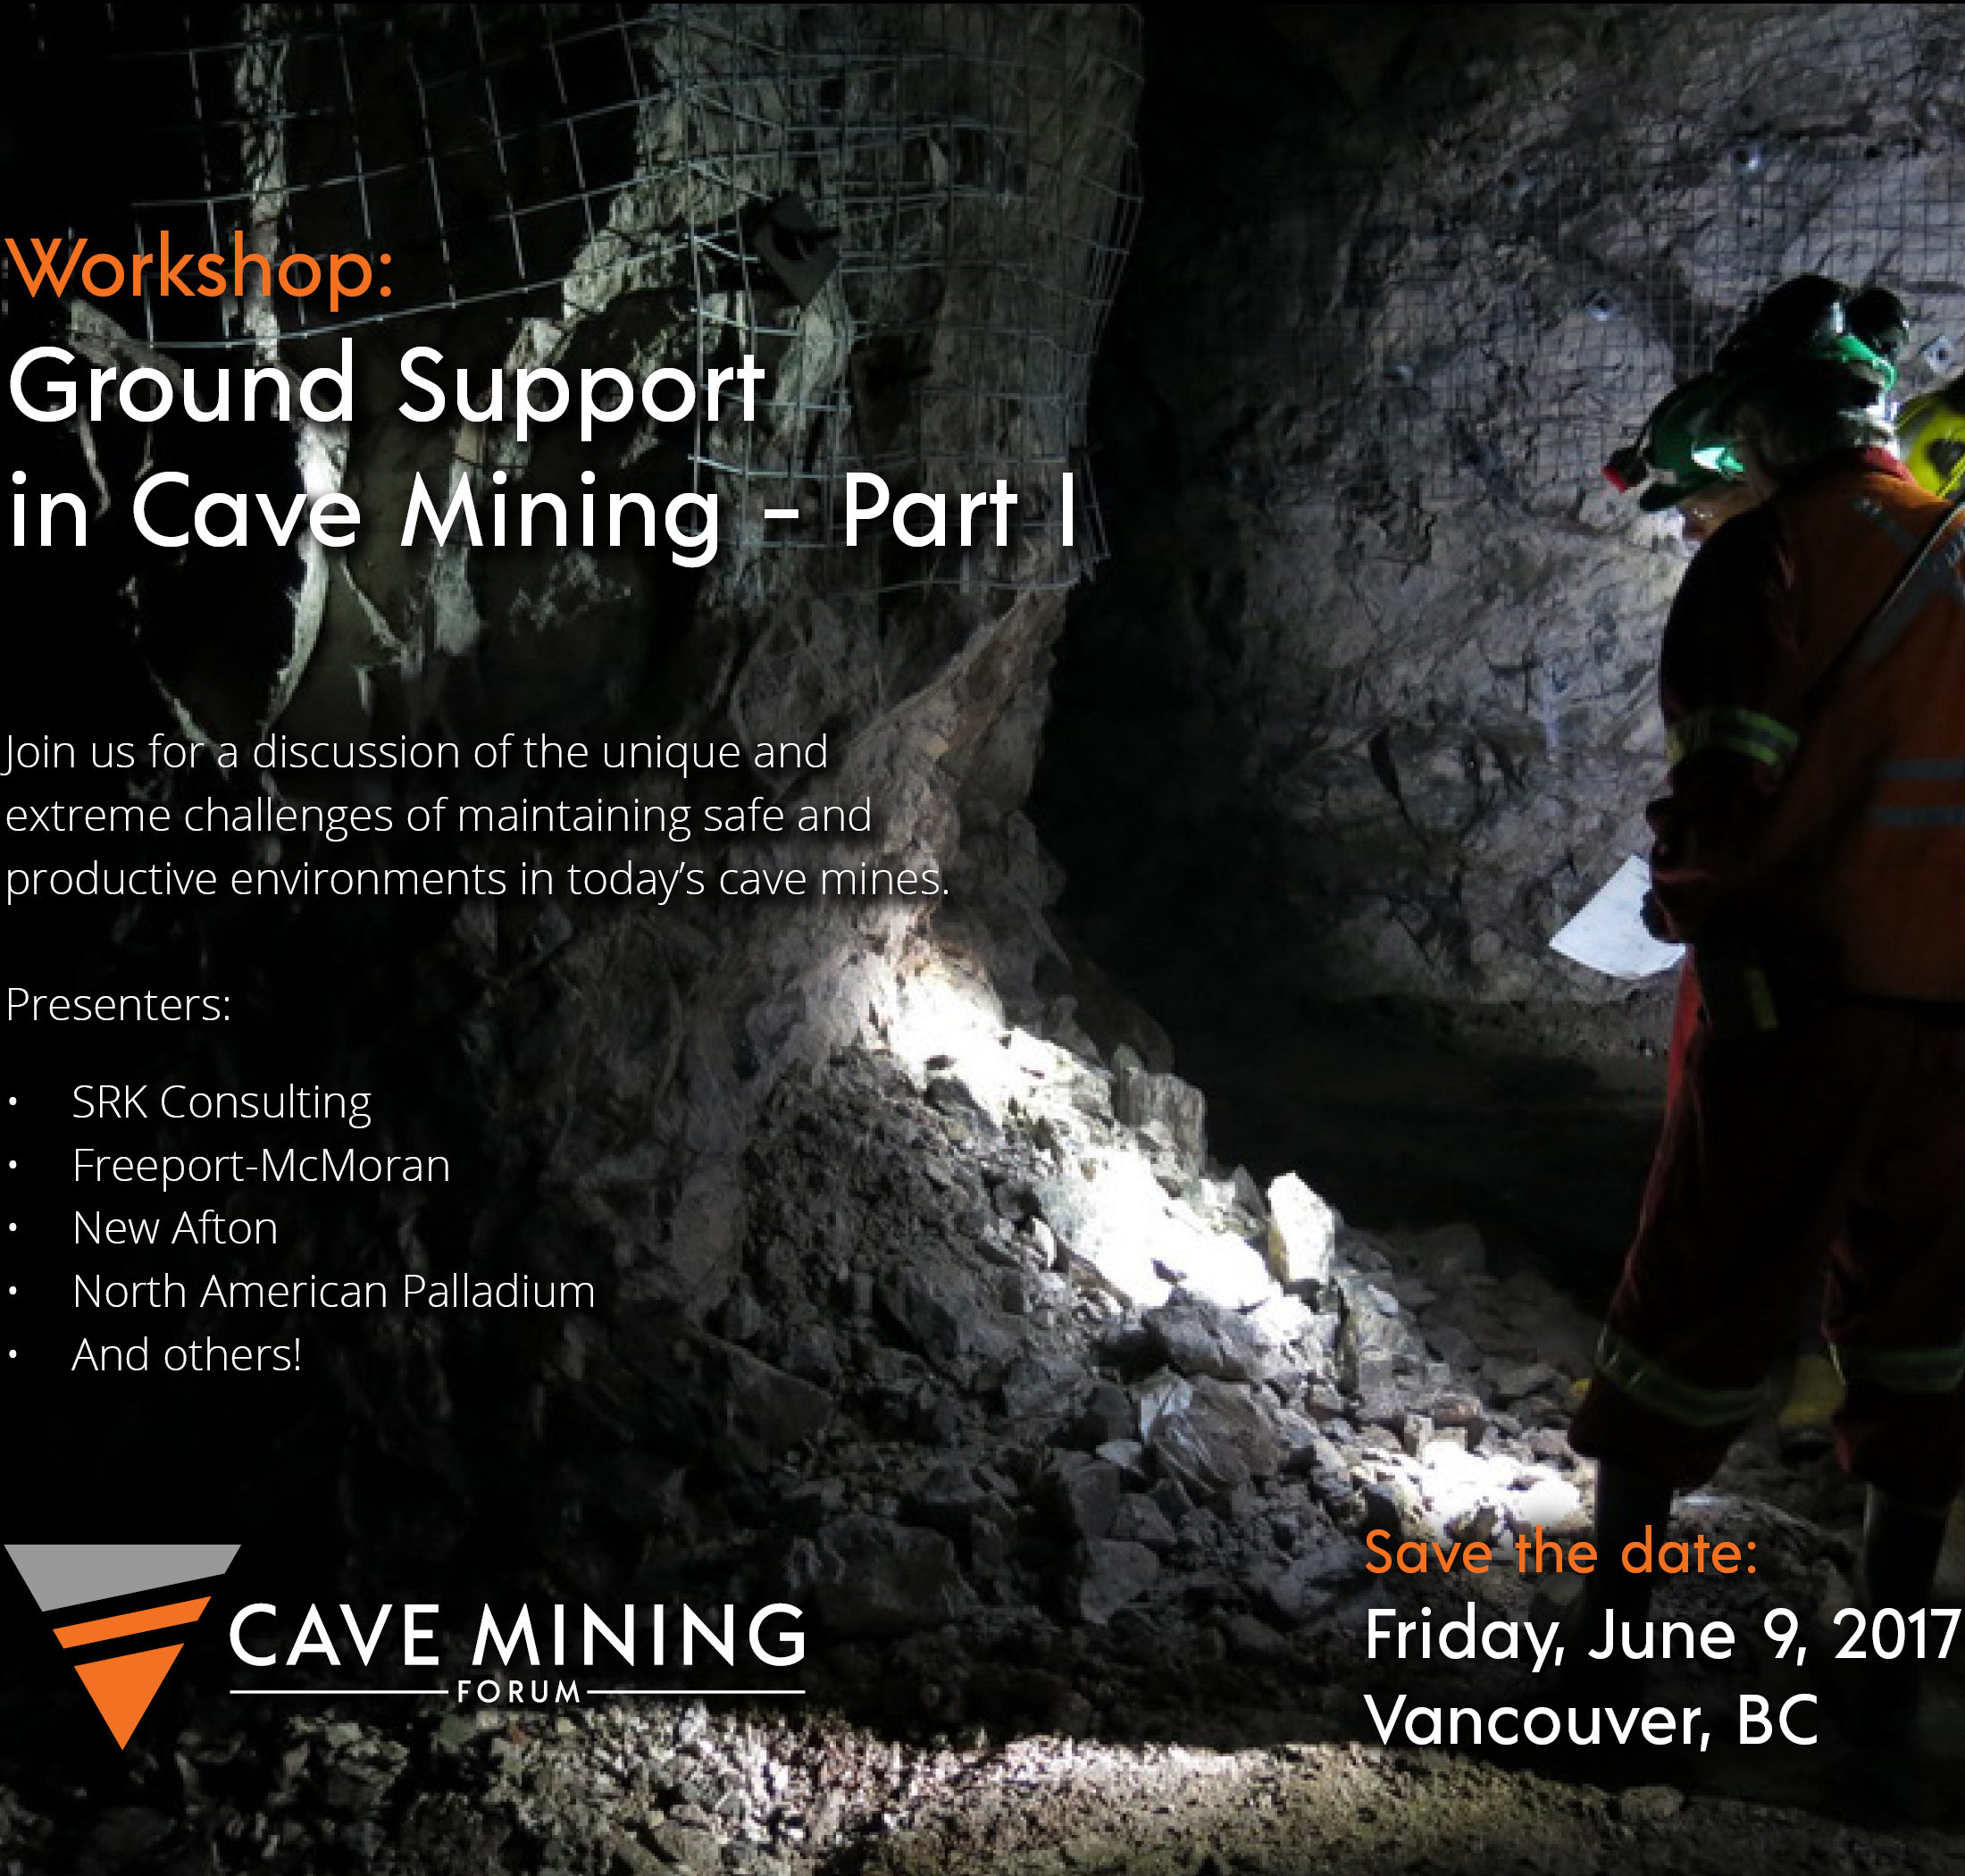 Ground Support in Cave Mining